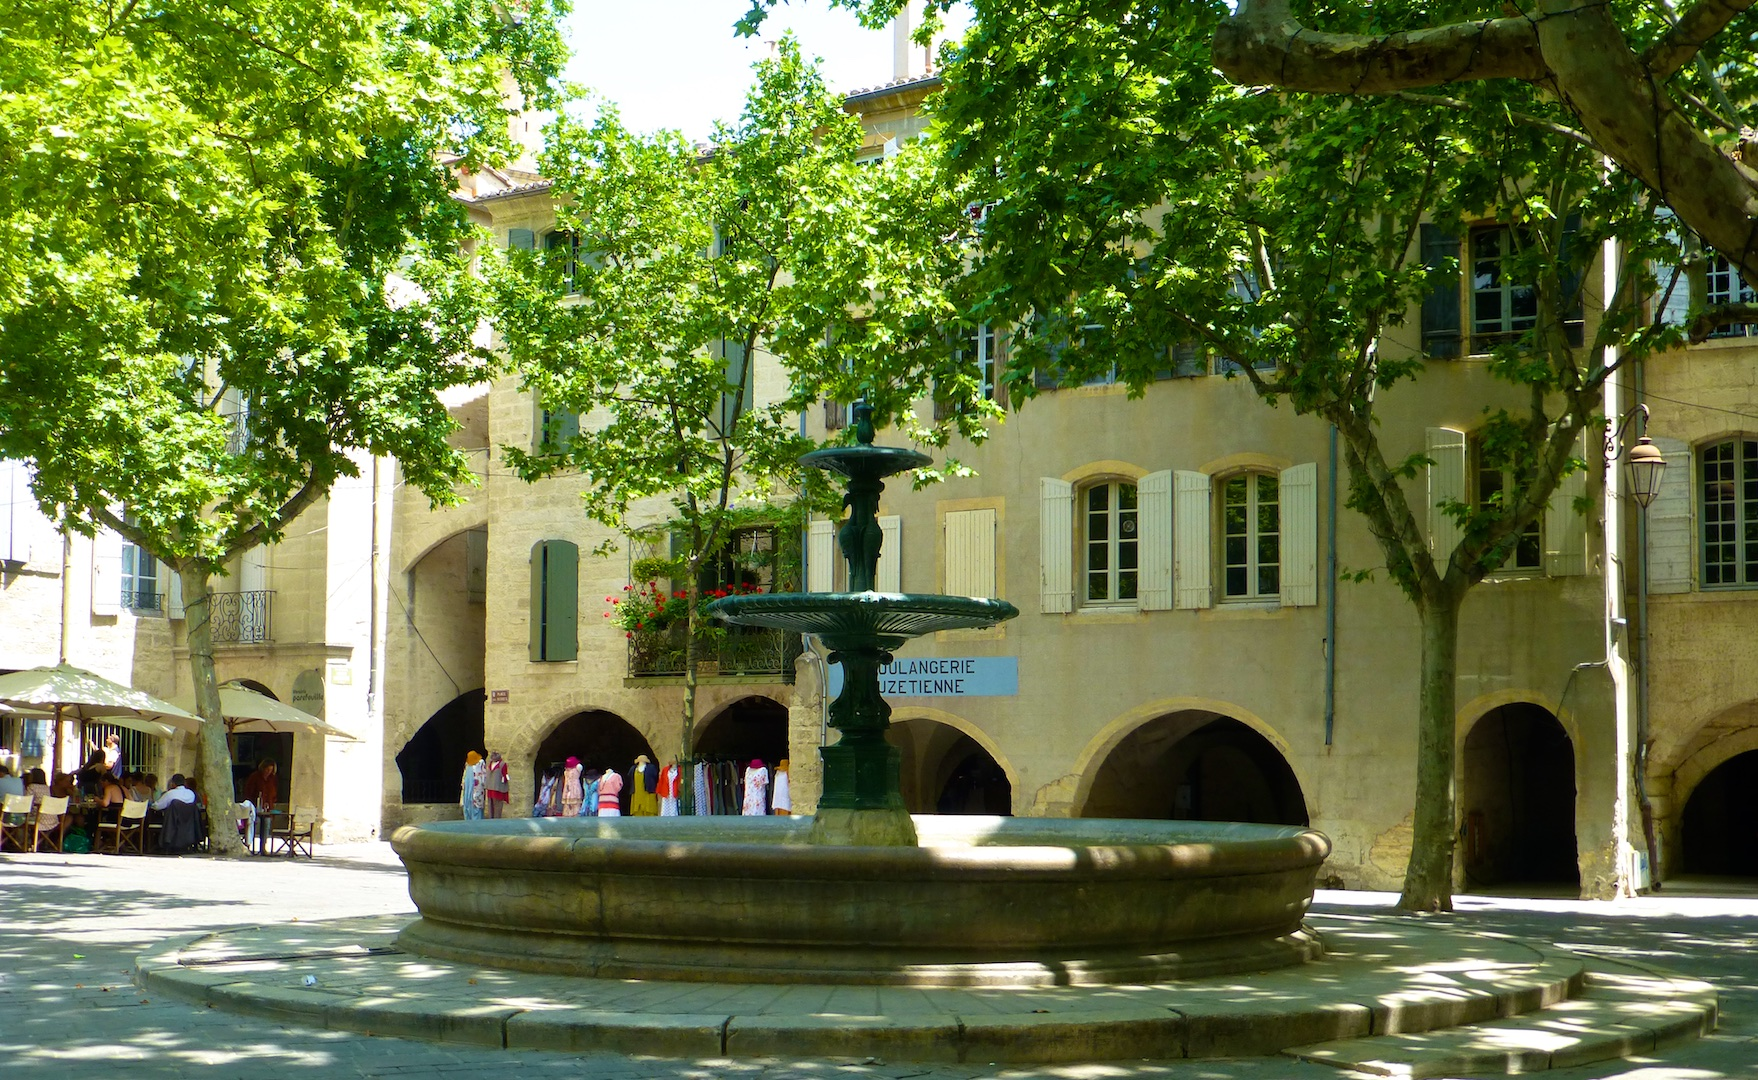 The fountain in Place aux herbes, Uzes, Languedoc Roussillon, France